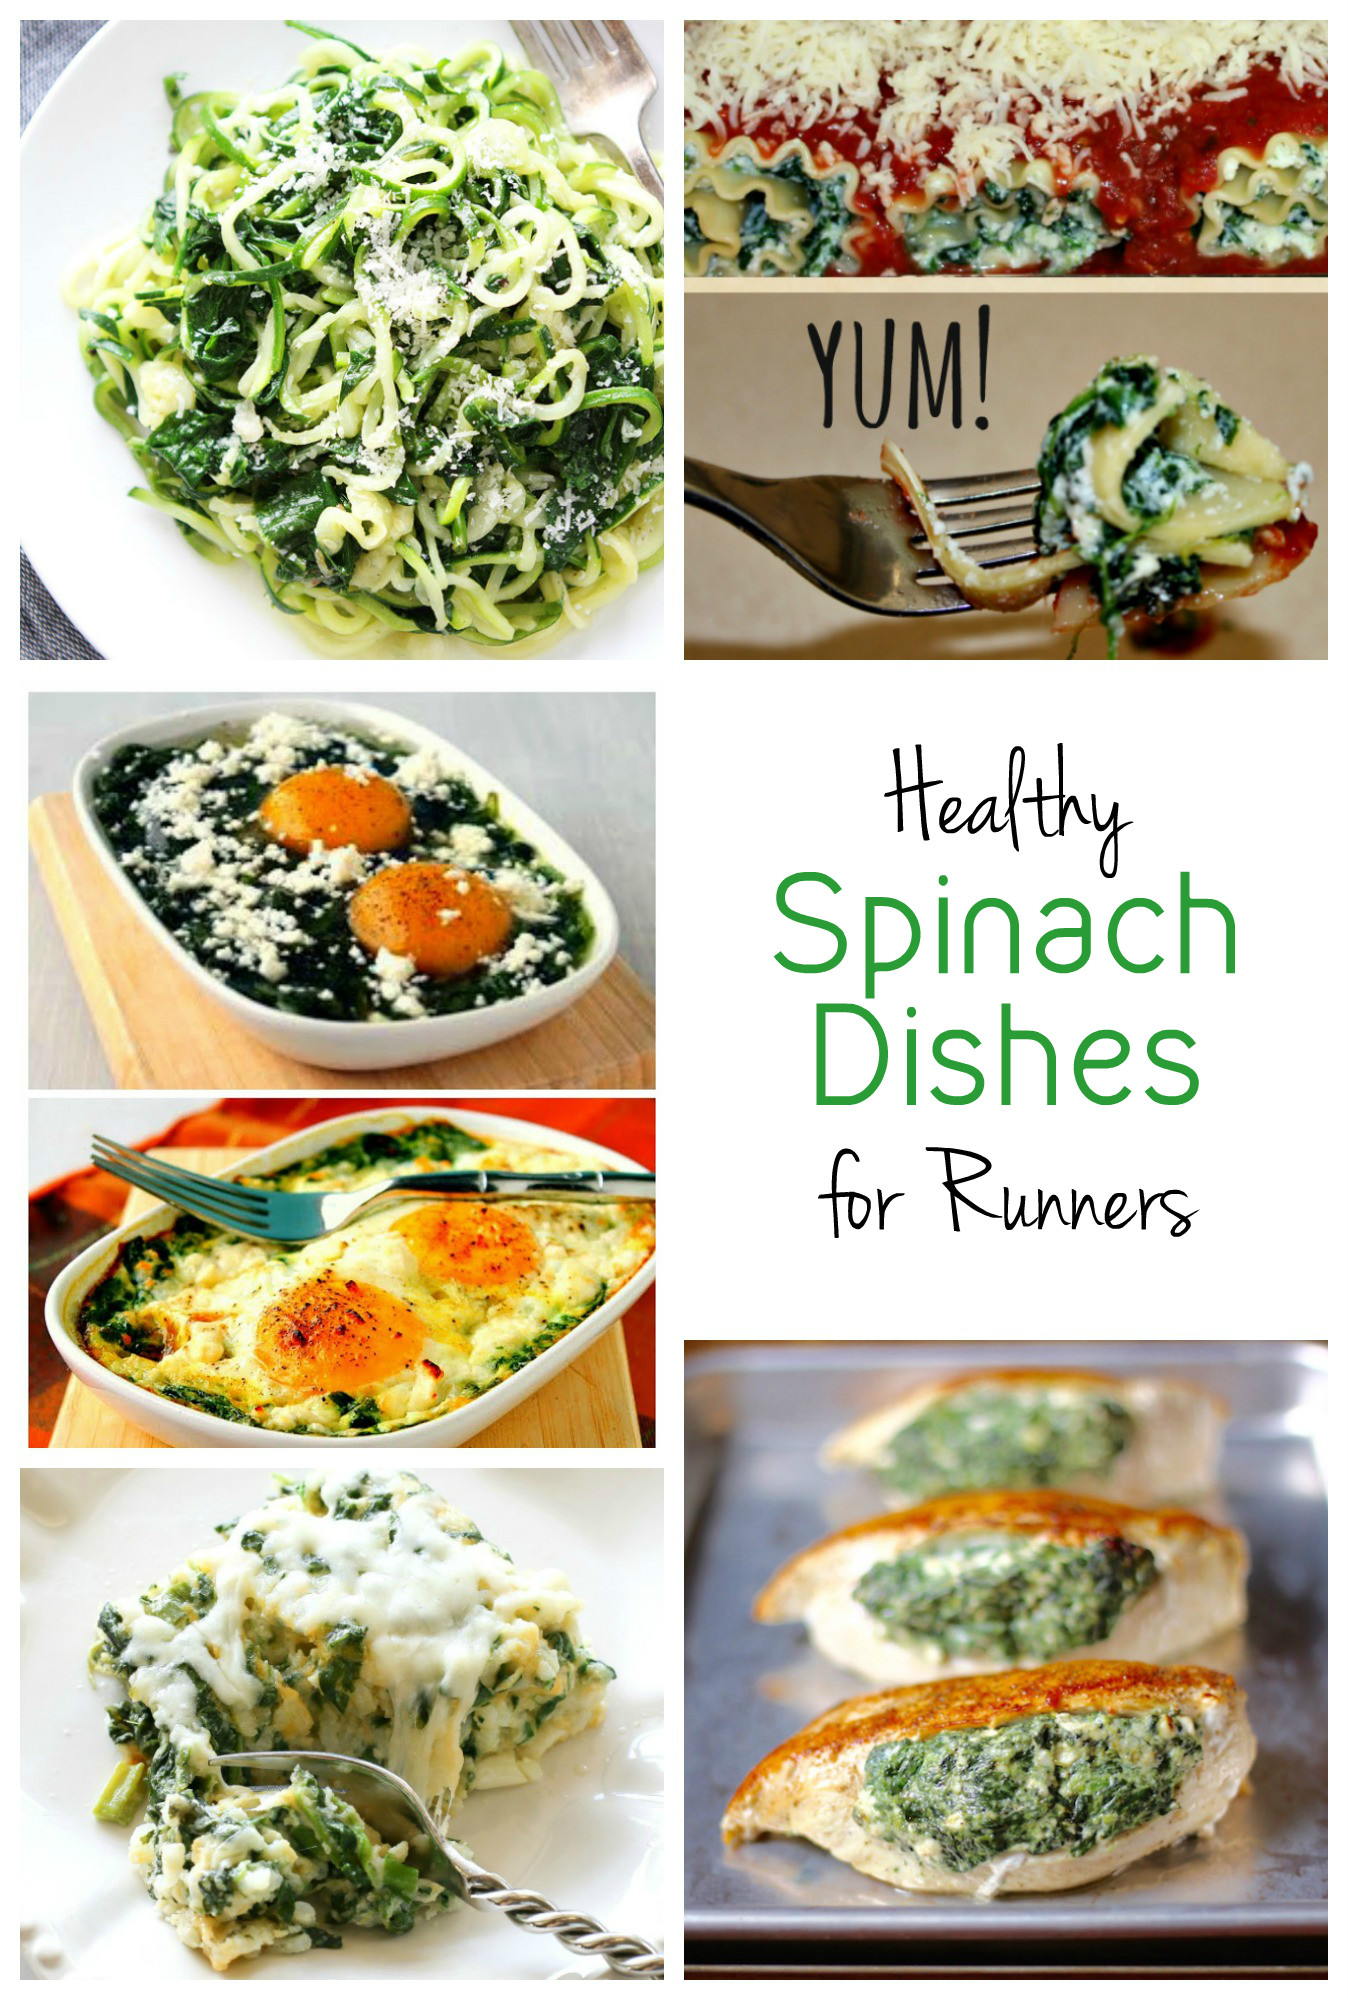 Healthy Spinach Dishes for Runners